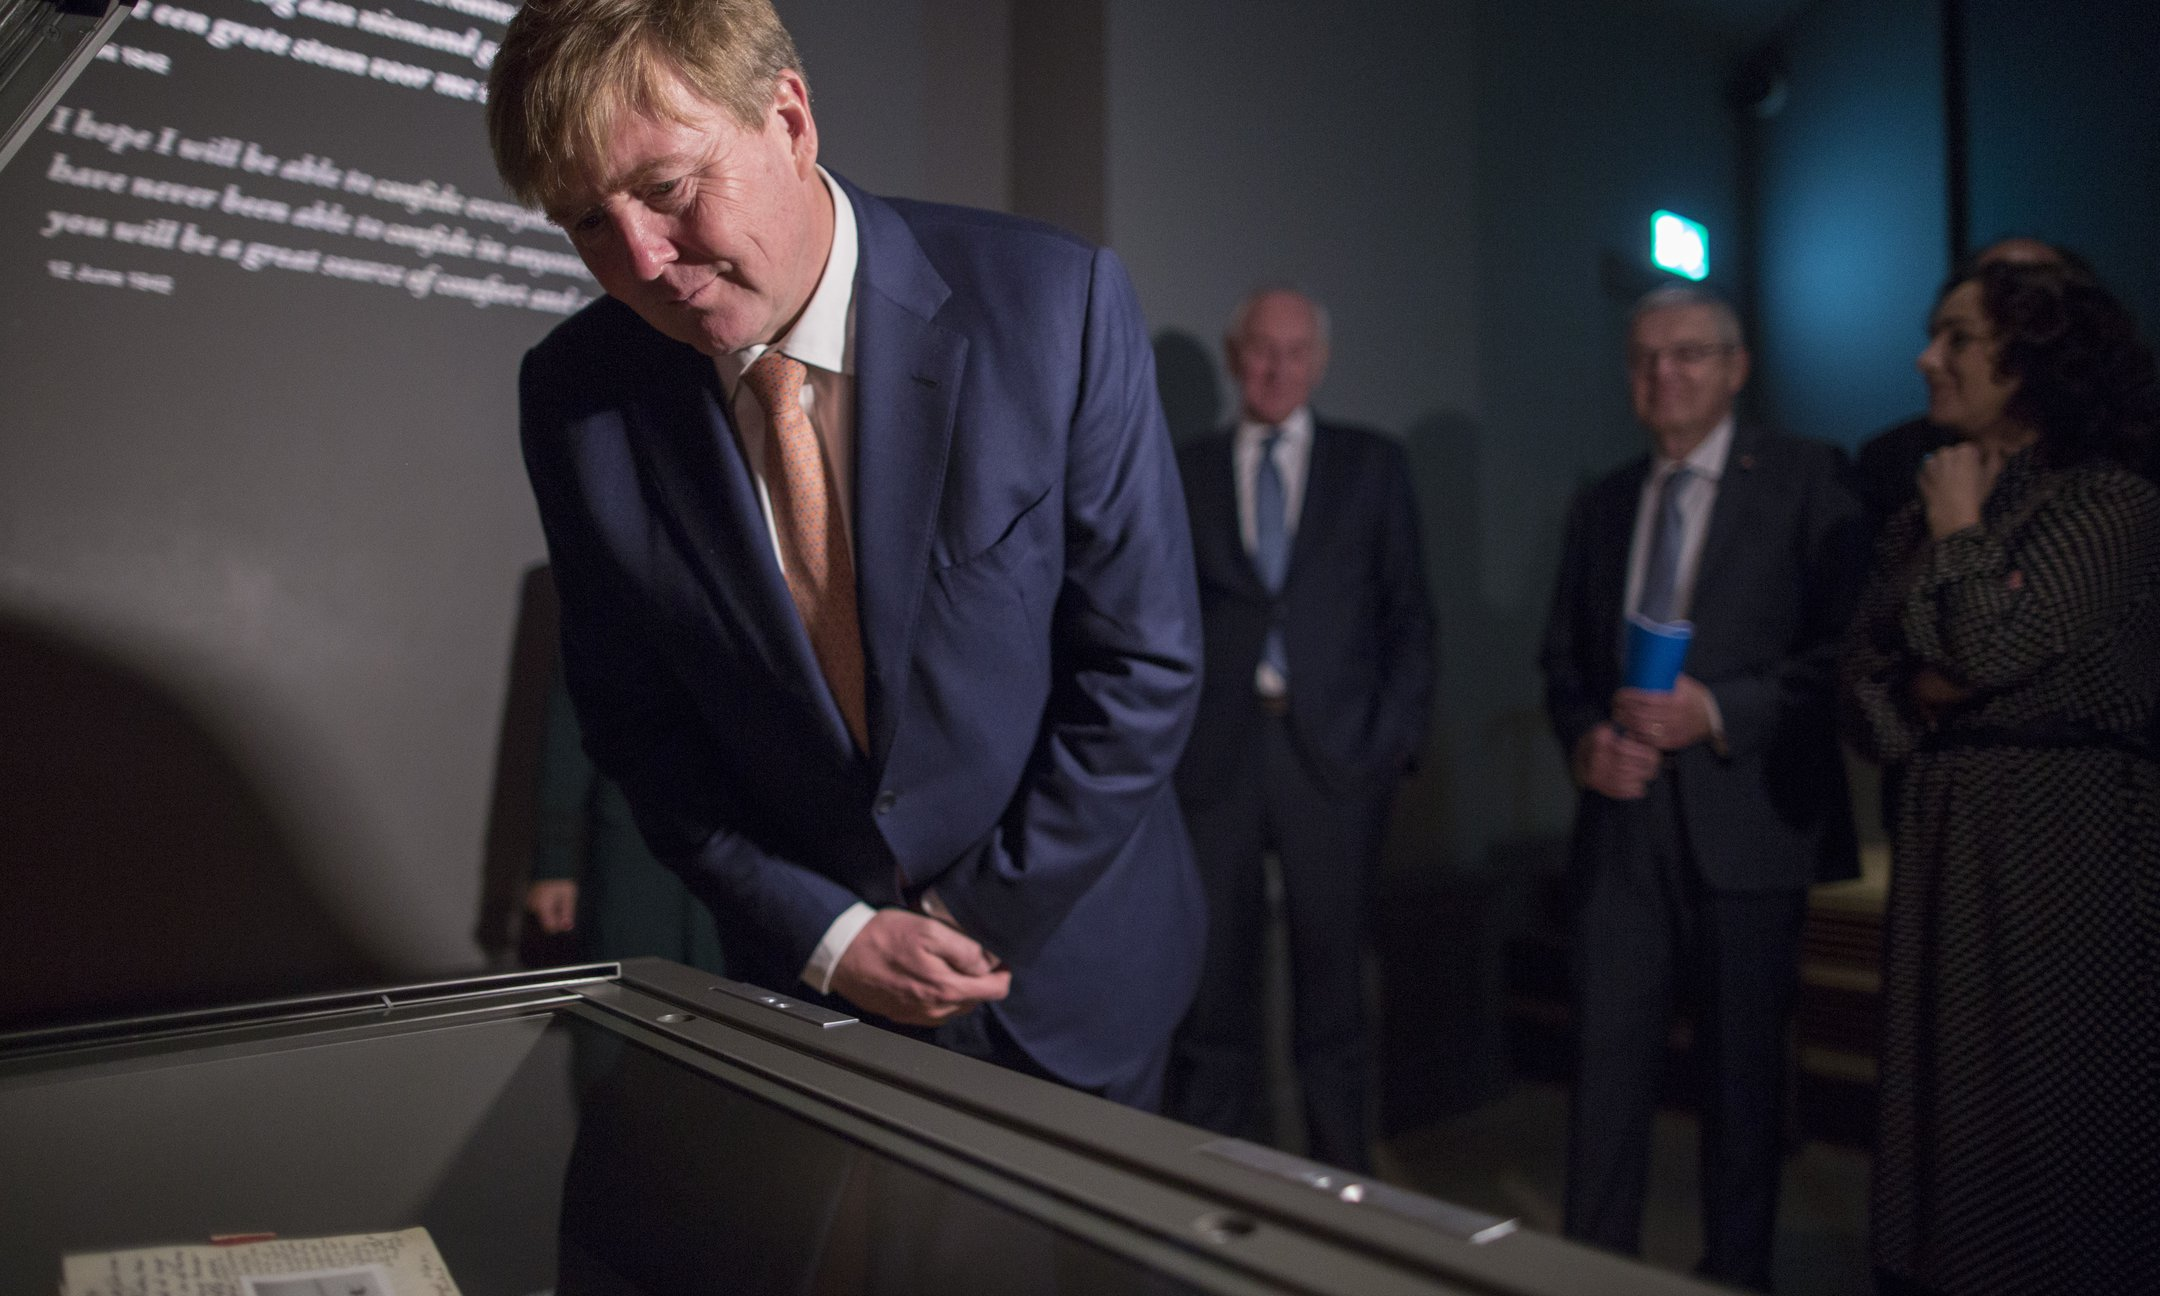 King Willem-Alexander looks at Anne Frank's original diary